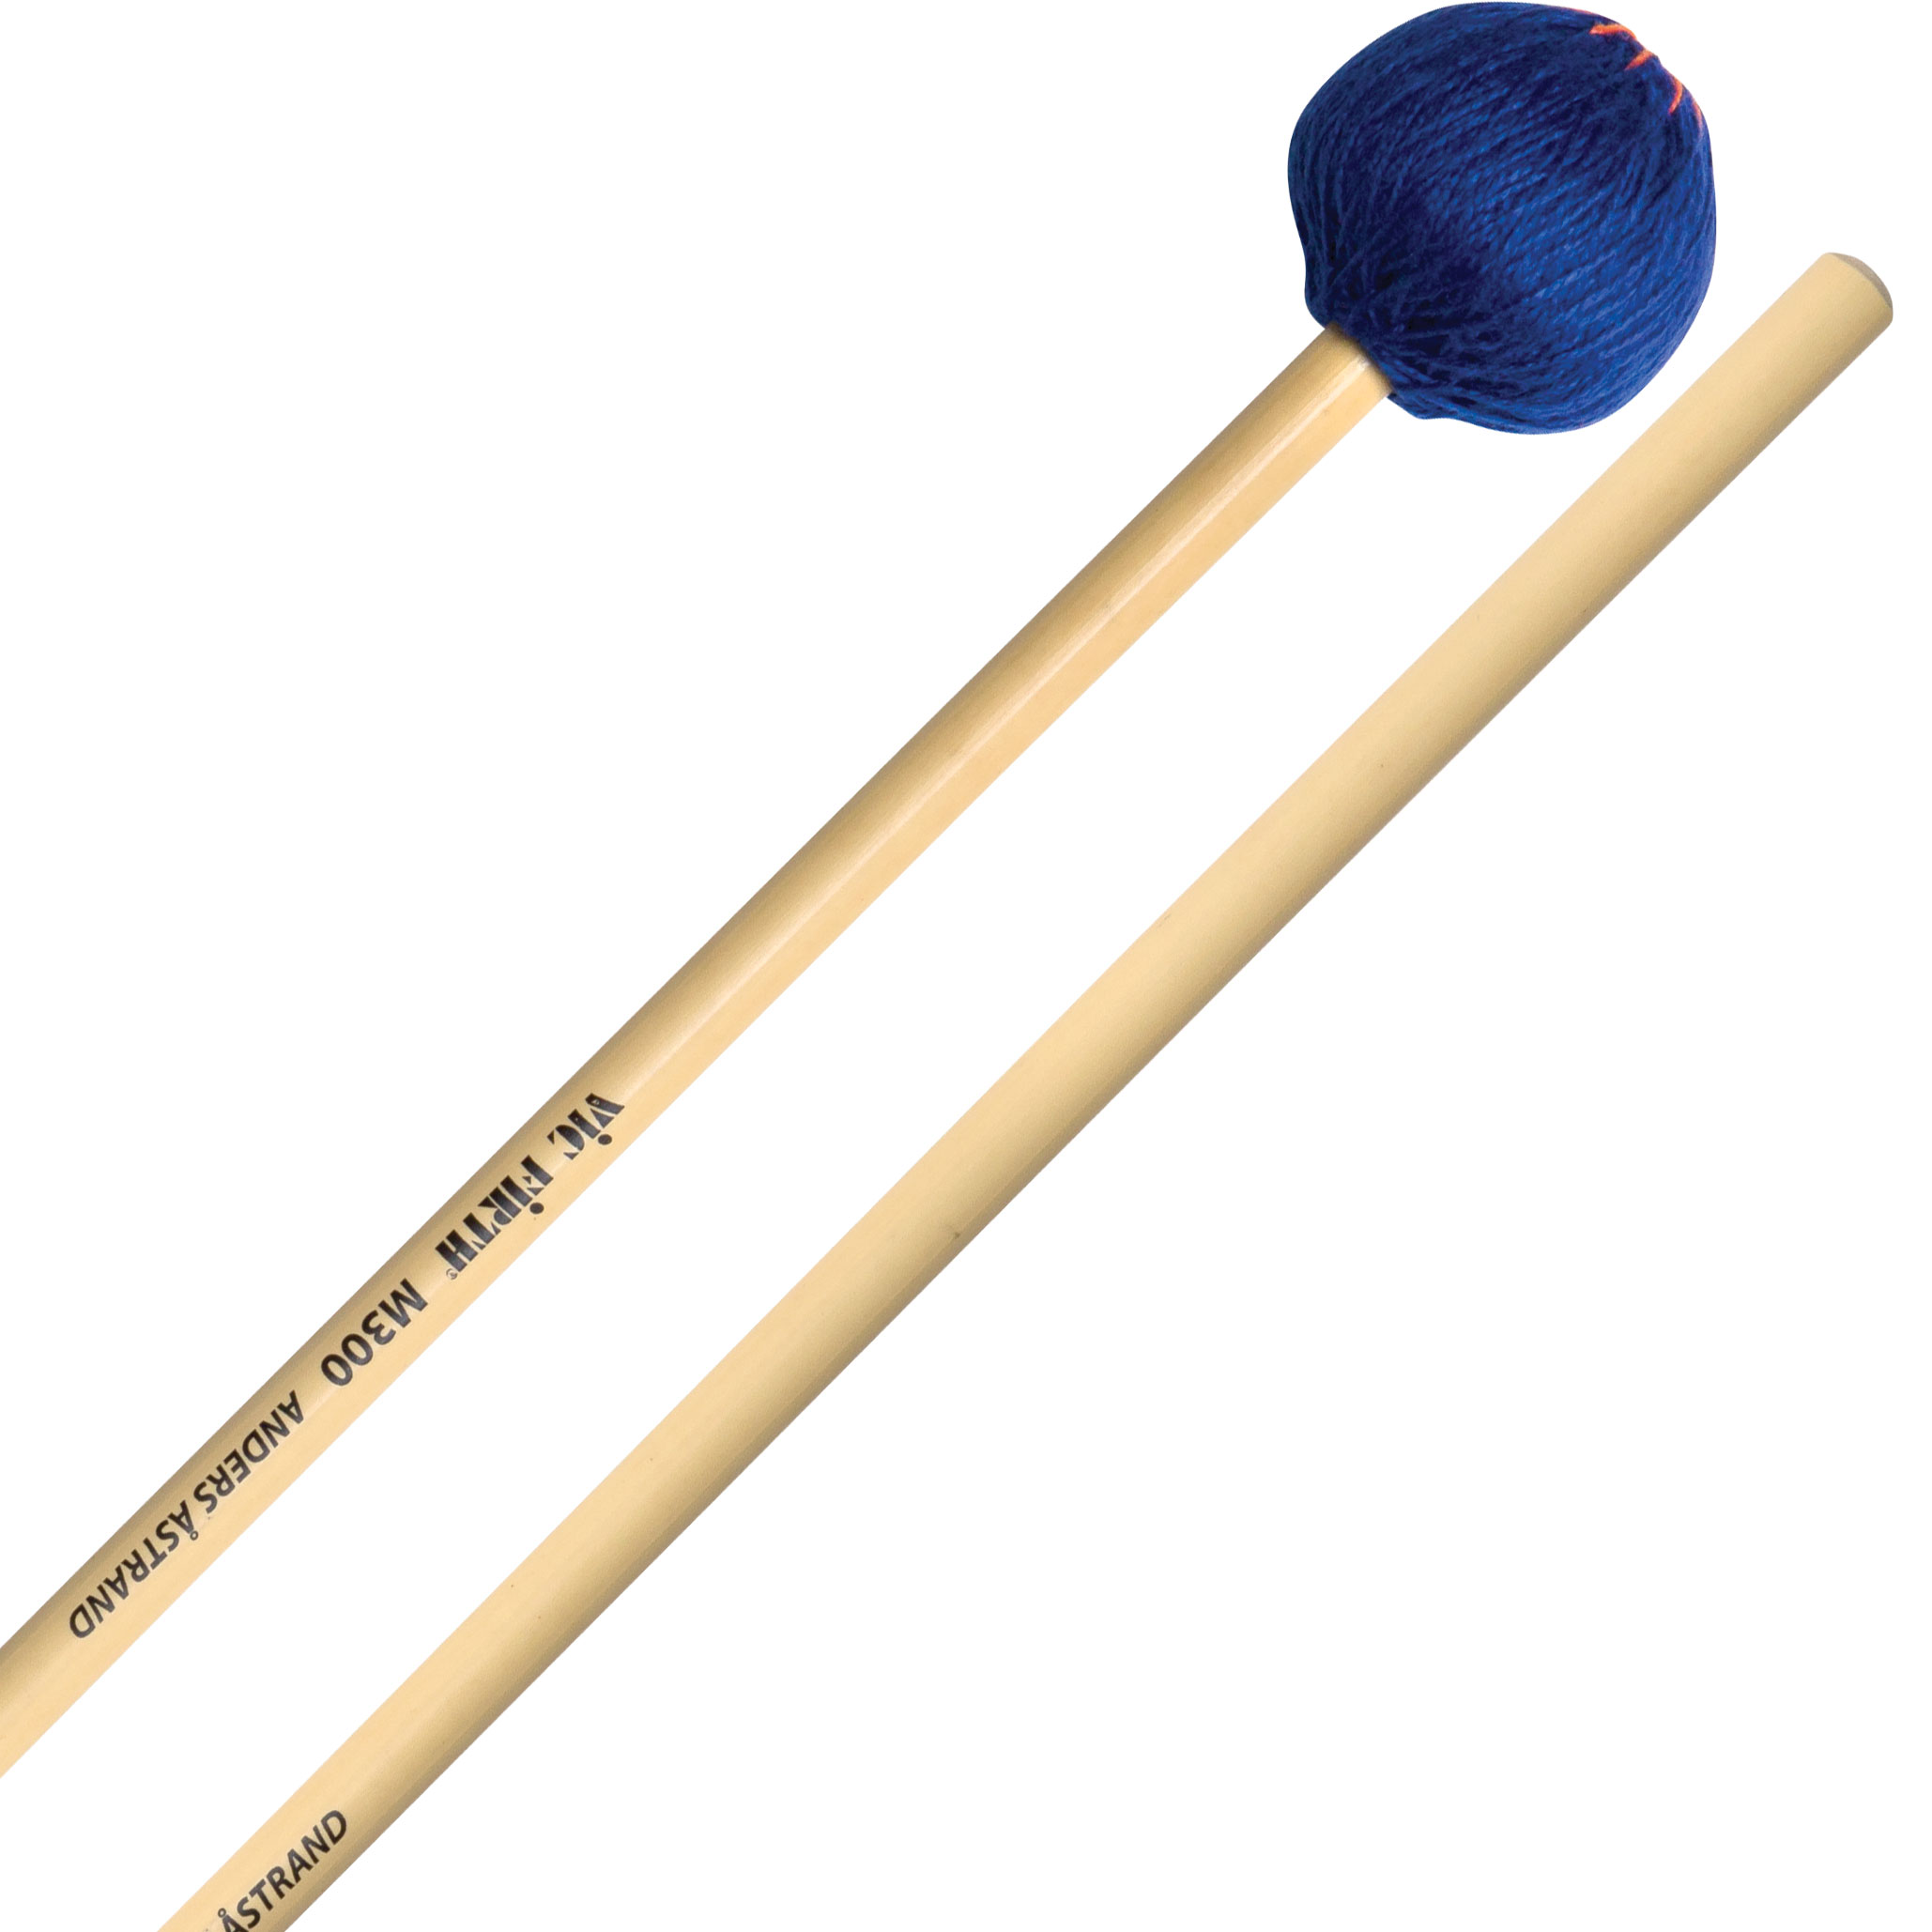 Vic Firth Anders Astrand Blue Signature Soft Keyboard Mallets